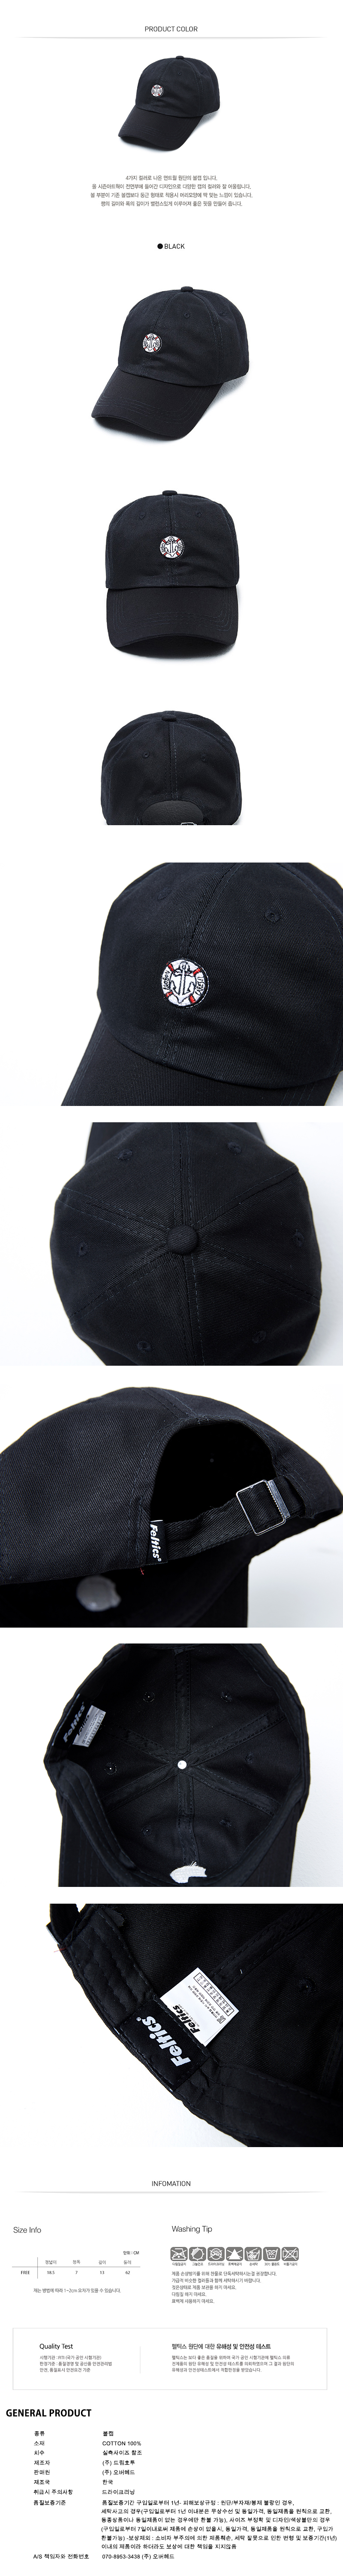 [ FELTICS ] [FELTICS] Point Label Cap Black (FEPFMCA53)